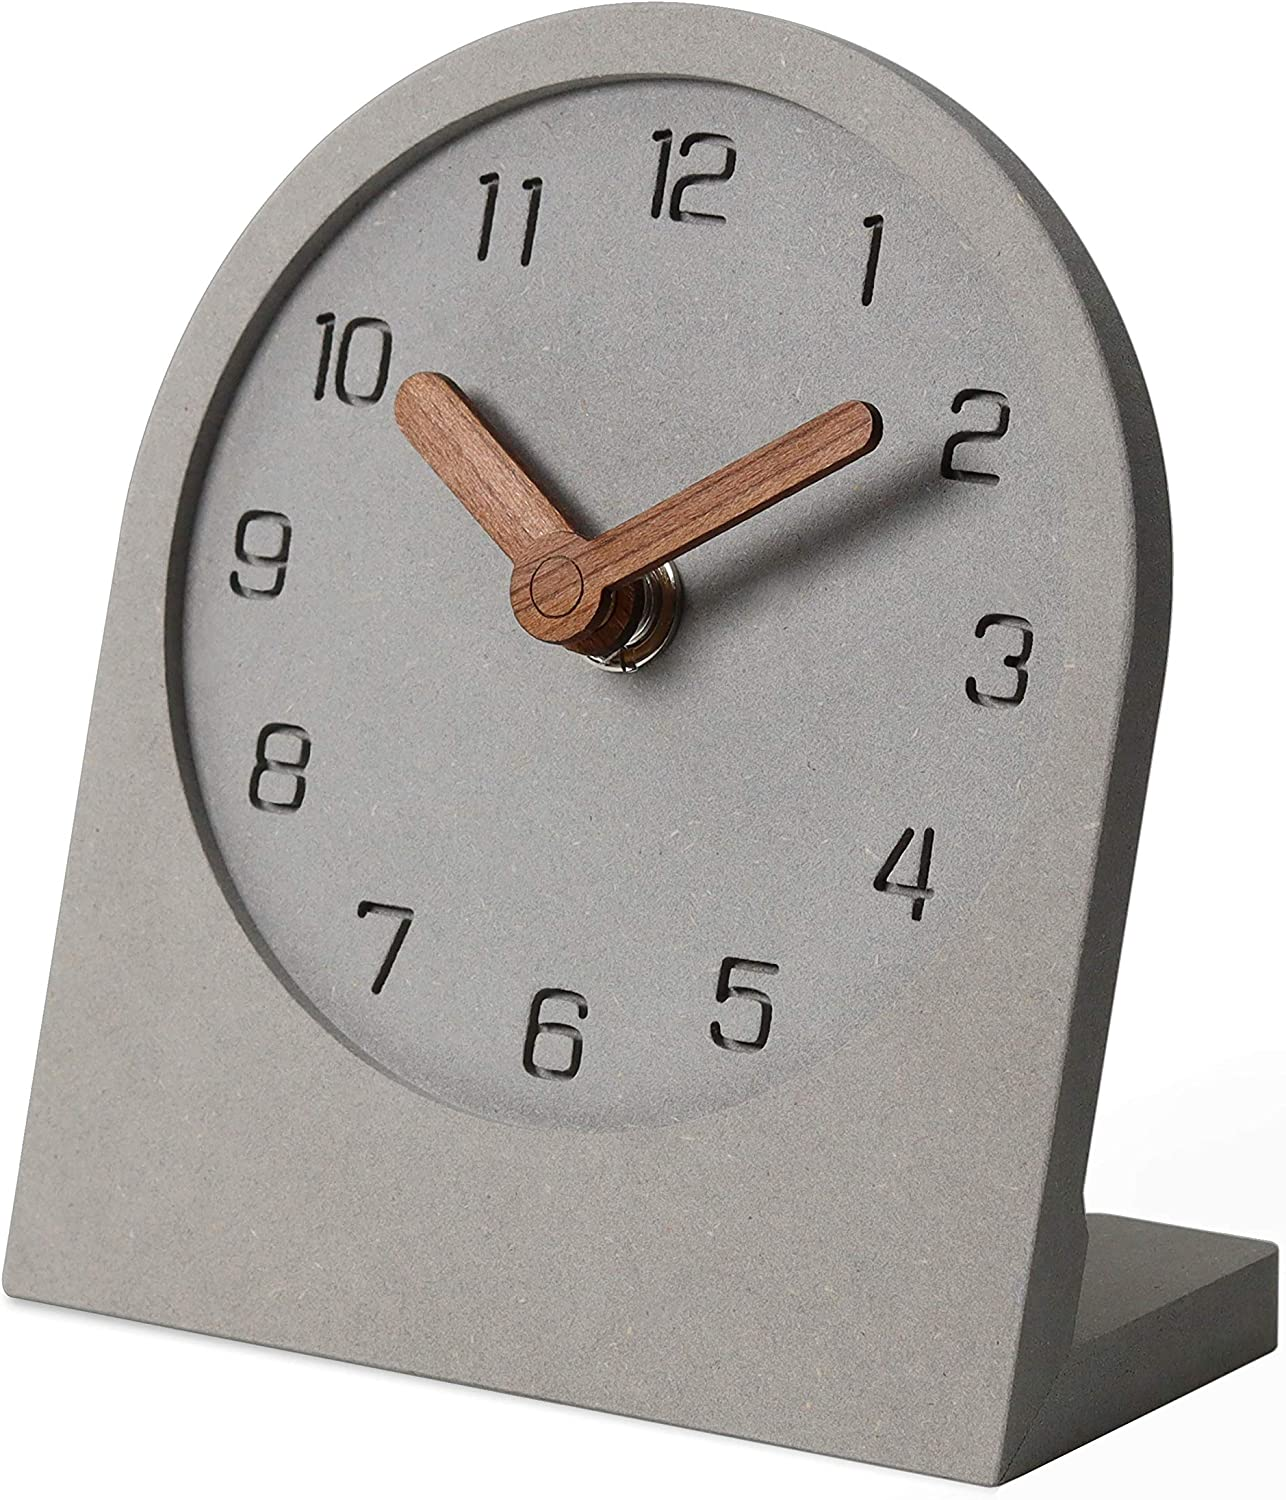 mooqs Wooden Silent Non-Ticking Battery Operated Decorative Small Mini Analog Modern Shelf Desk Table Clock for Home, Office, Living Room, Bed Room (Gray)